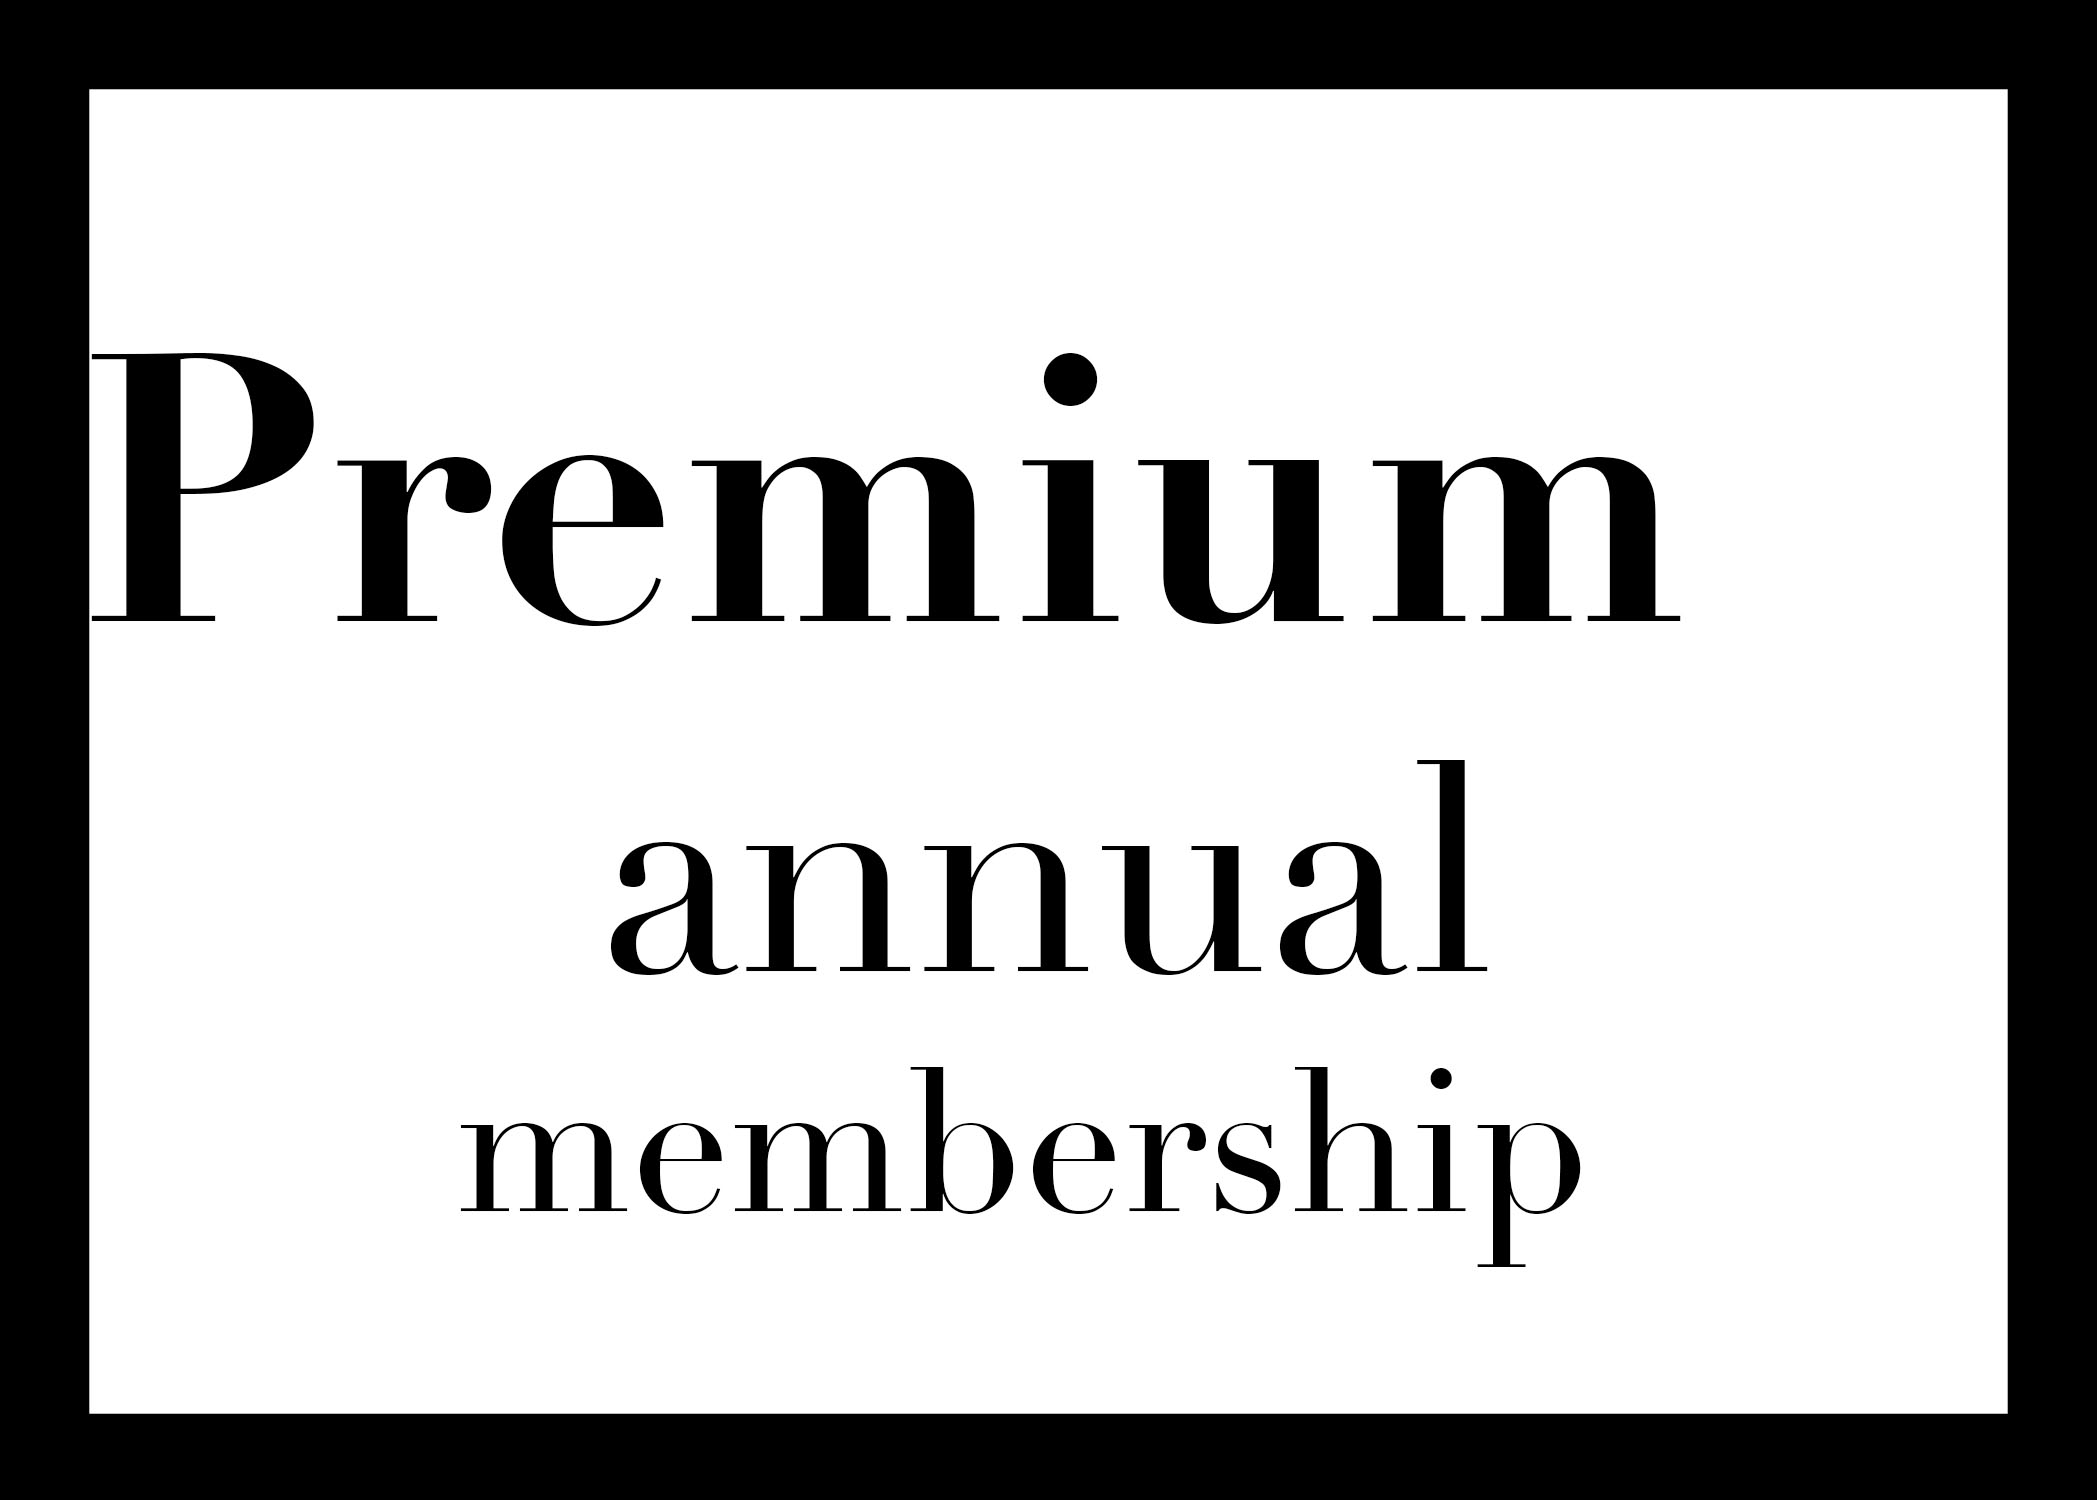 TWO MONTHS FREE premium annual membership - Average $108/month for full year. $129 per month for first 10 months then 11th & 12th month free.